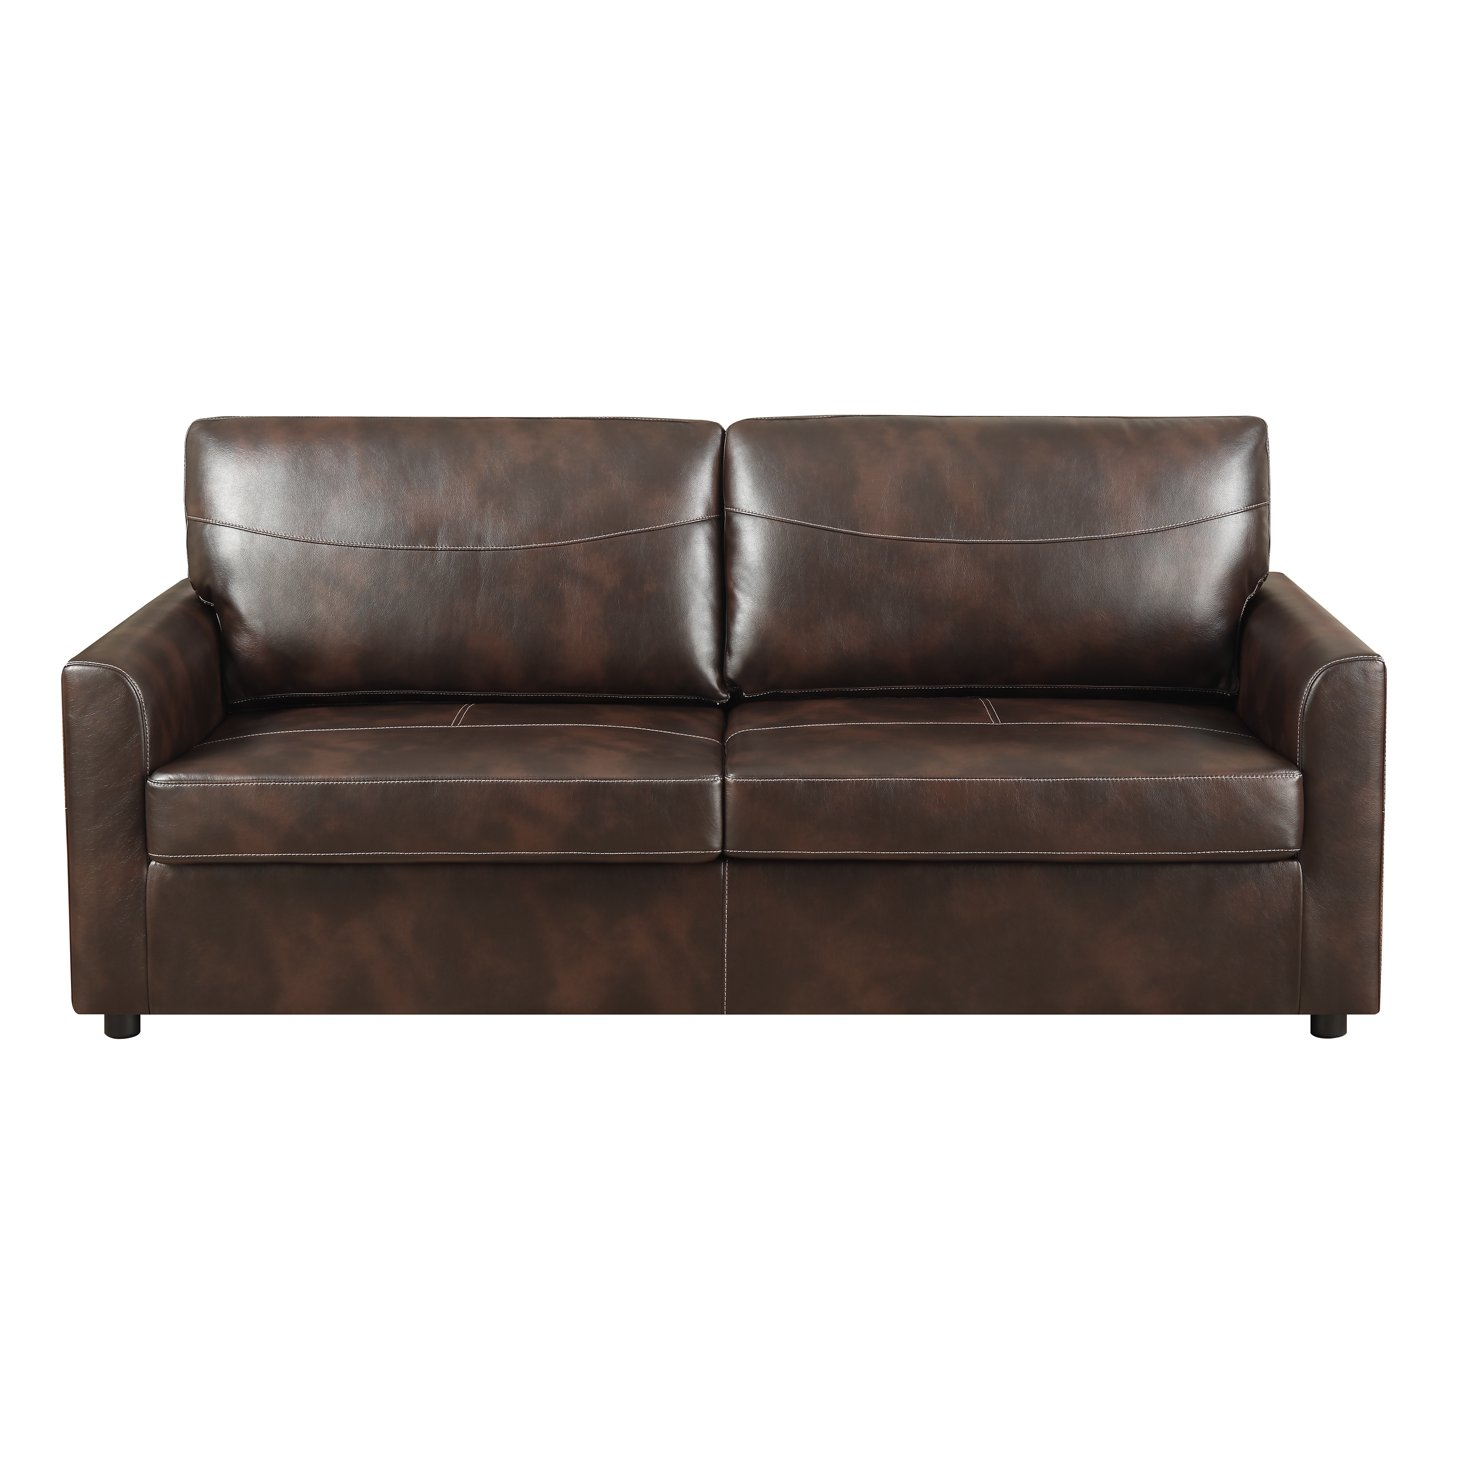 Sofa Queen Coffee Brown Queen Sofa Bed Slumber